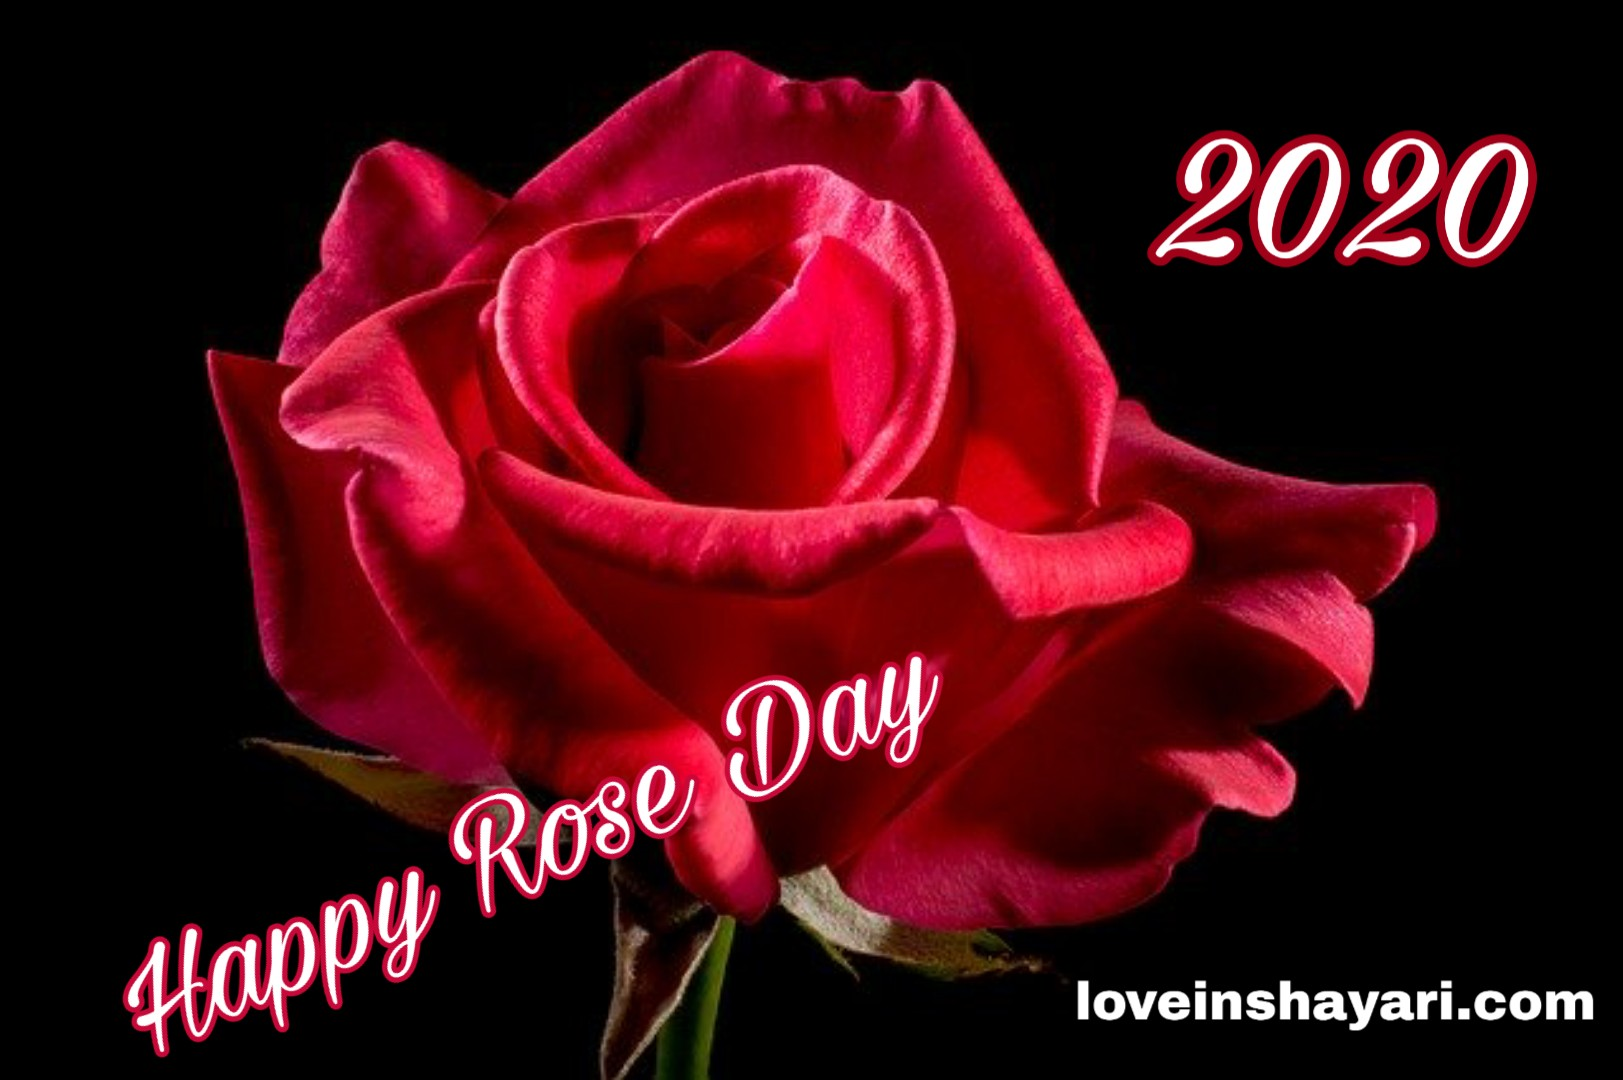 Photo of Happy rose day 2020 wishes, shayari, sms,quotes